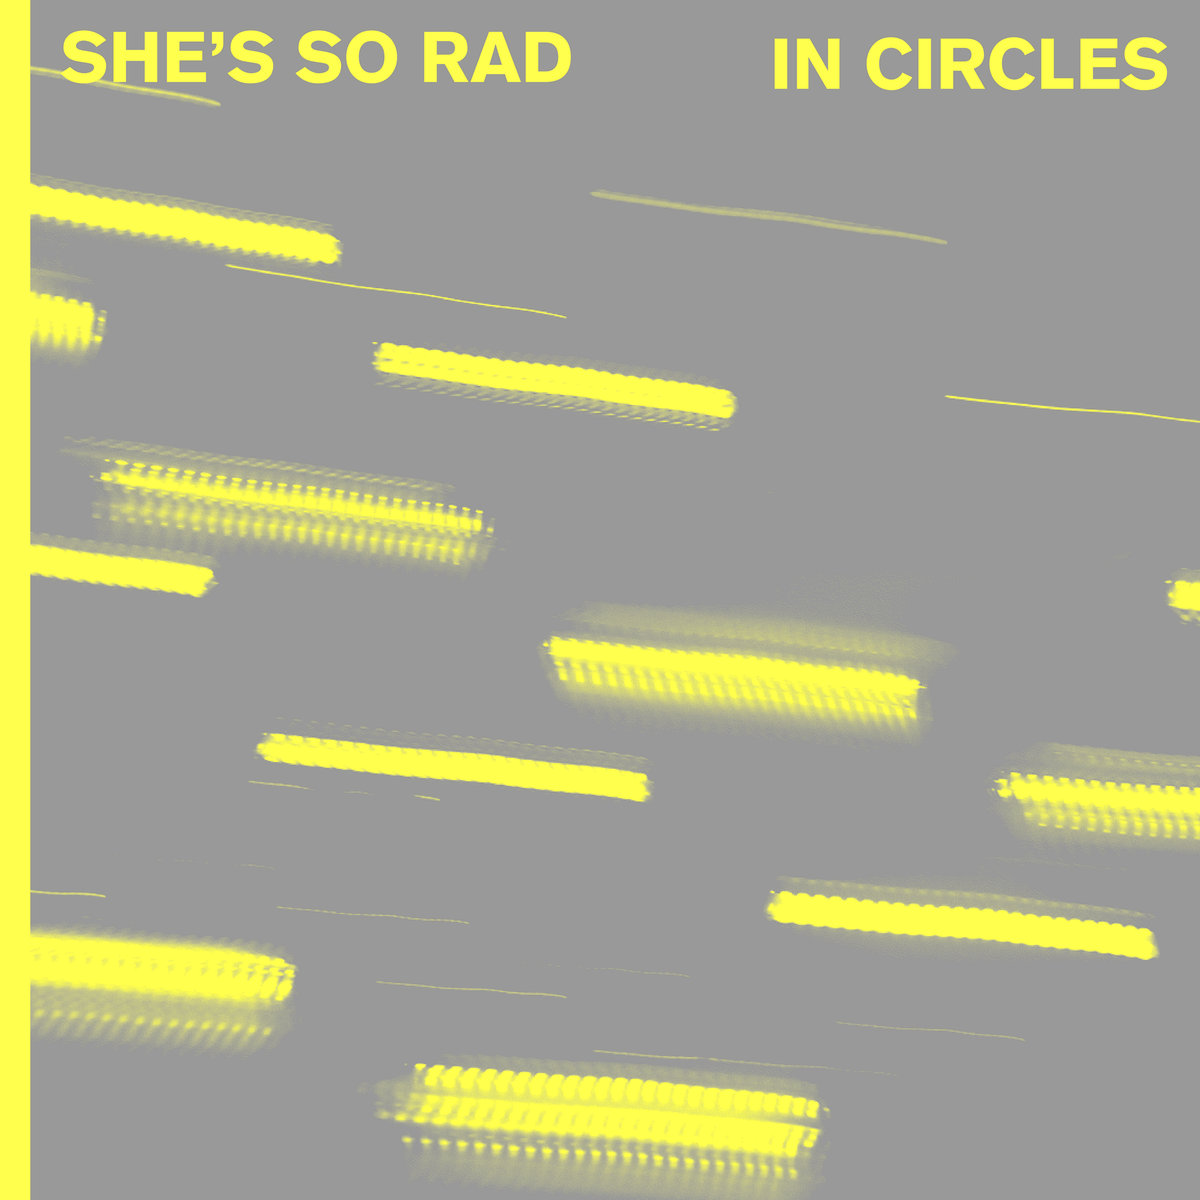 she's so rad - In circles - production / engineering / mix / performance / songwriting